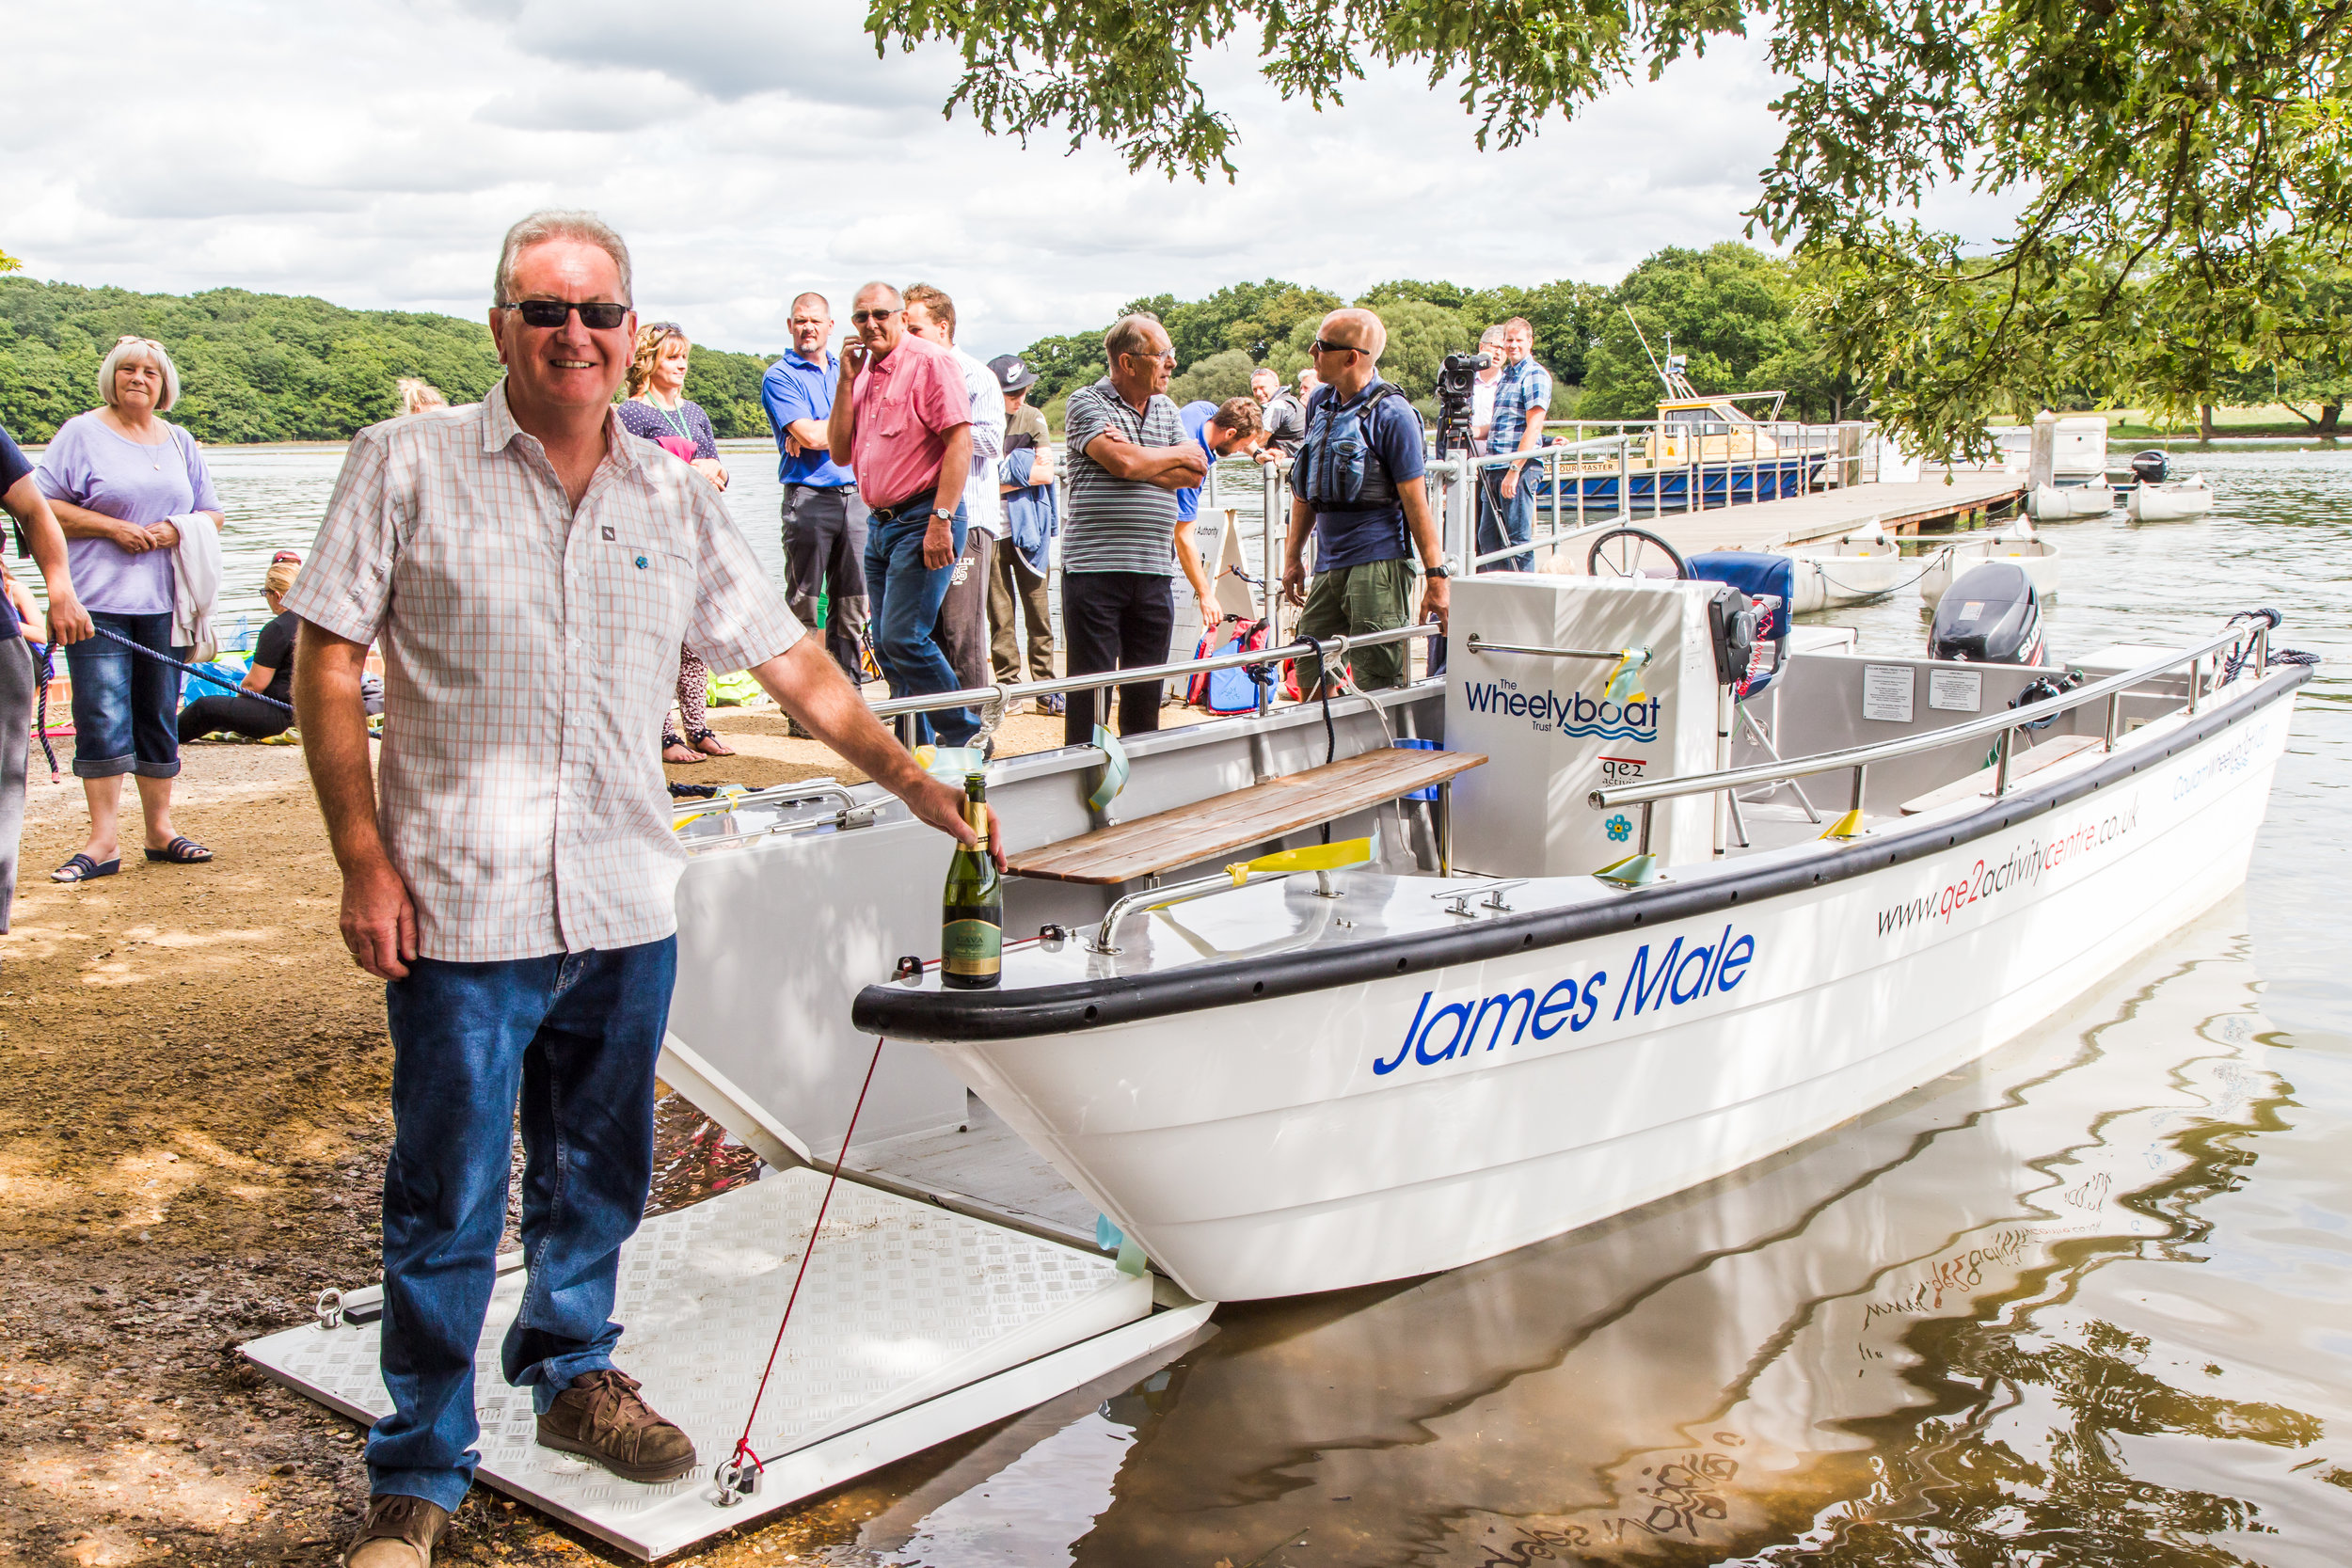 New Coulam Wheelyboat V20 launched at QE2 Activity Centre in memory of James Male_credit Nicki Fry, Appletree Photography 15.jpg